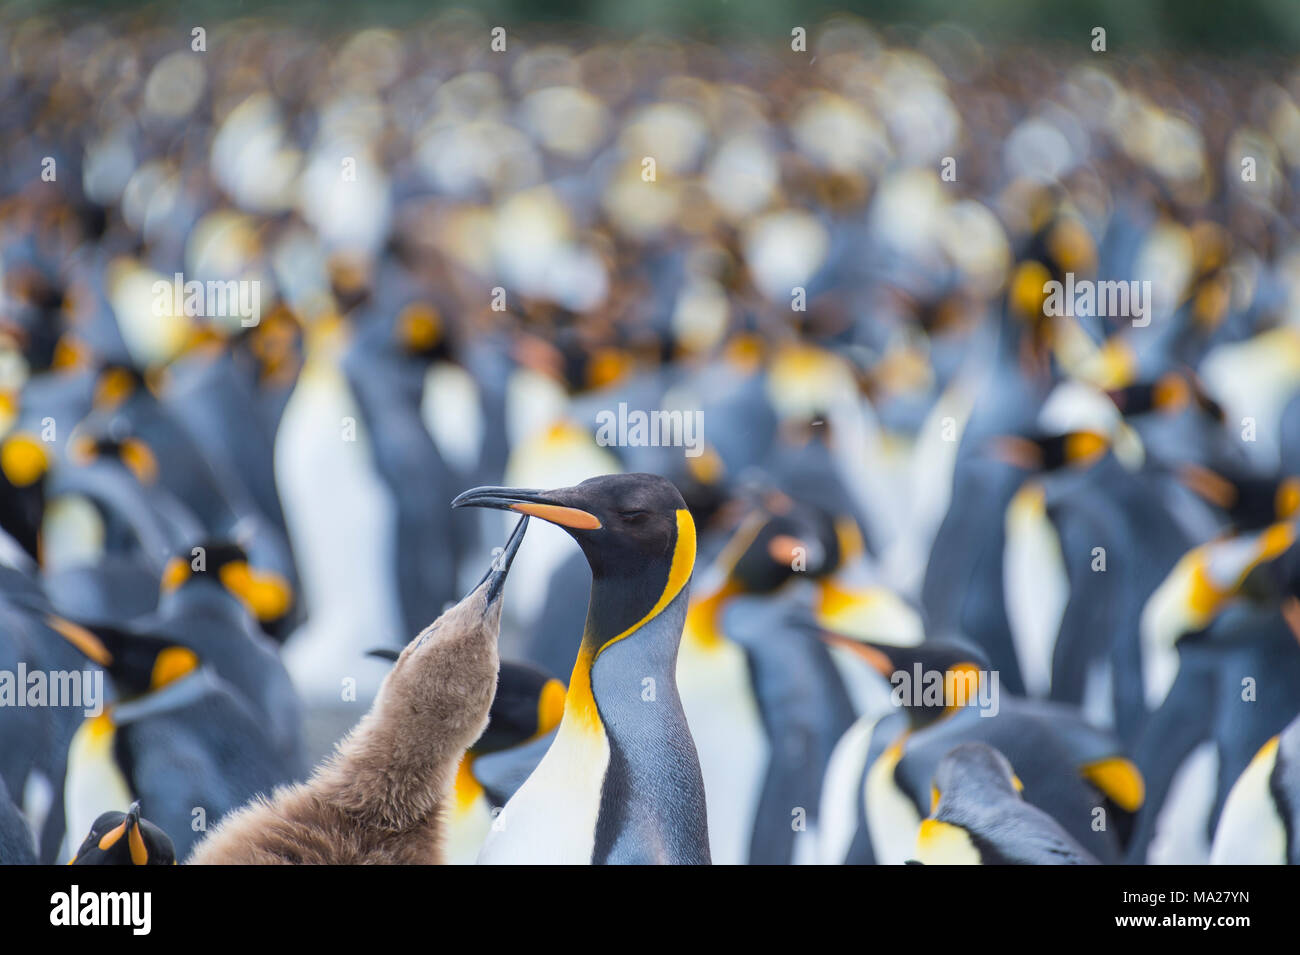 King Penguins colony Gold Harbour at South Georgia - Stock Image